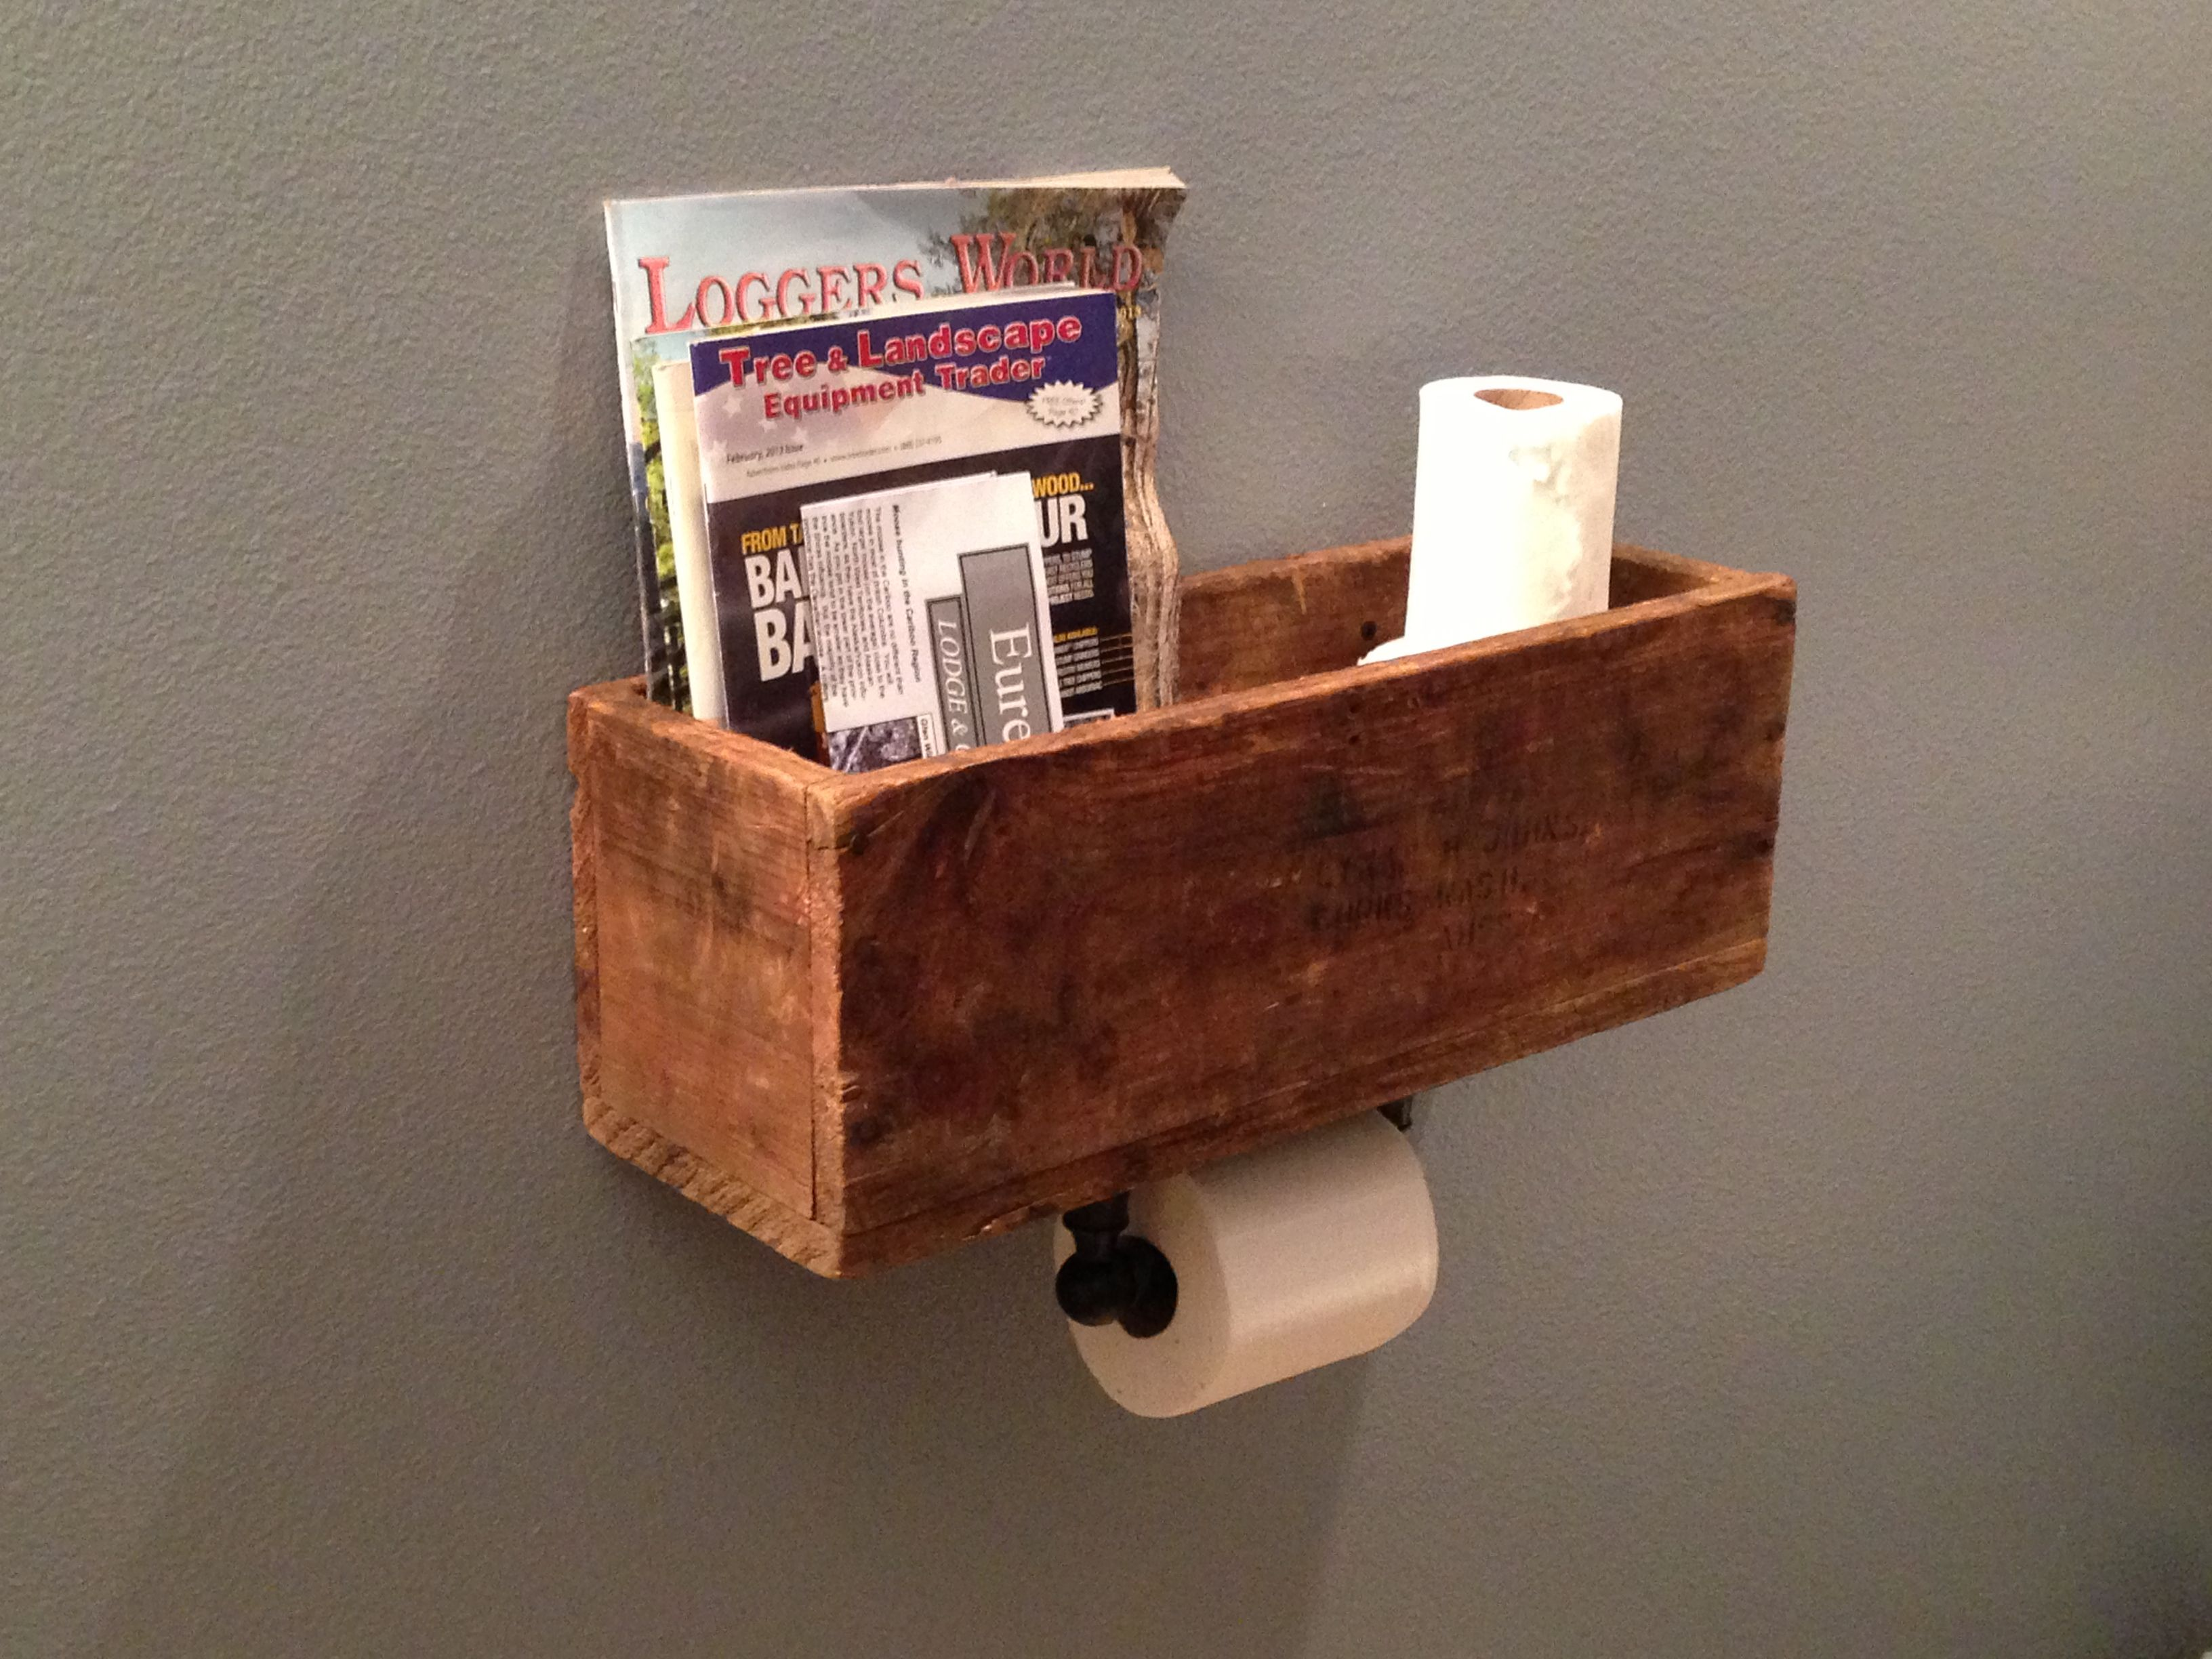 Toilet Paper Holder Rack Diy Magazine Rack And Toilet Paper Dispenser Very Clever